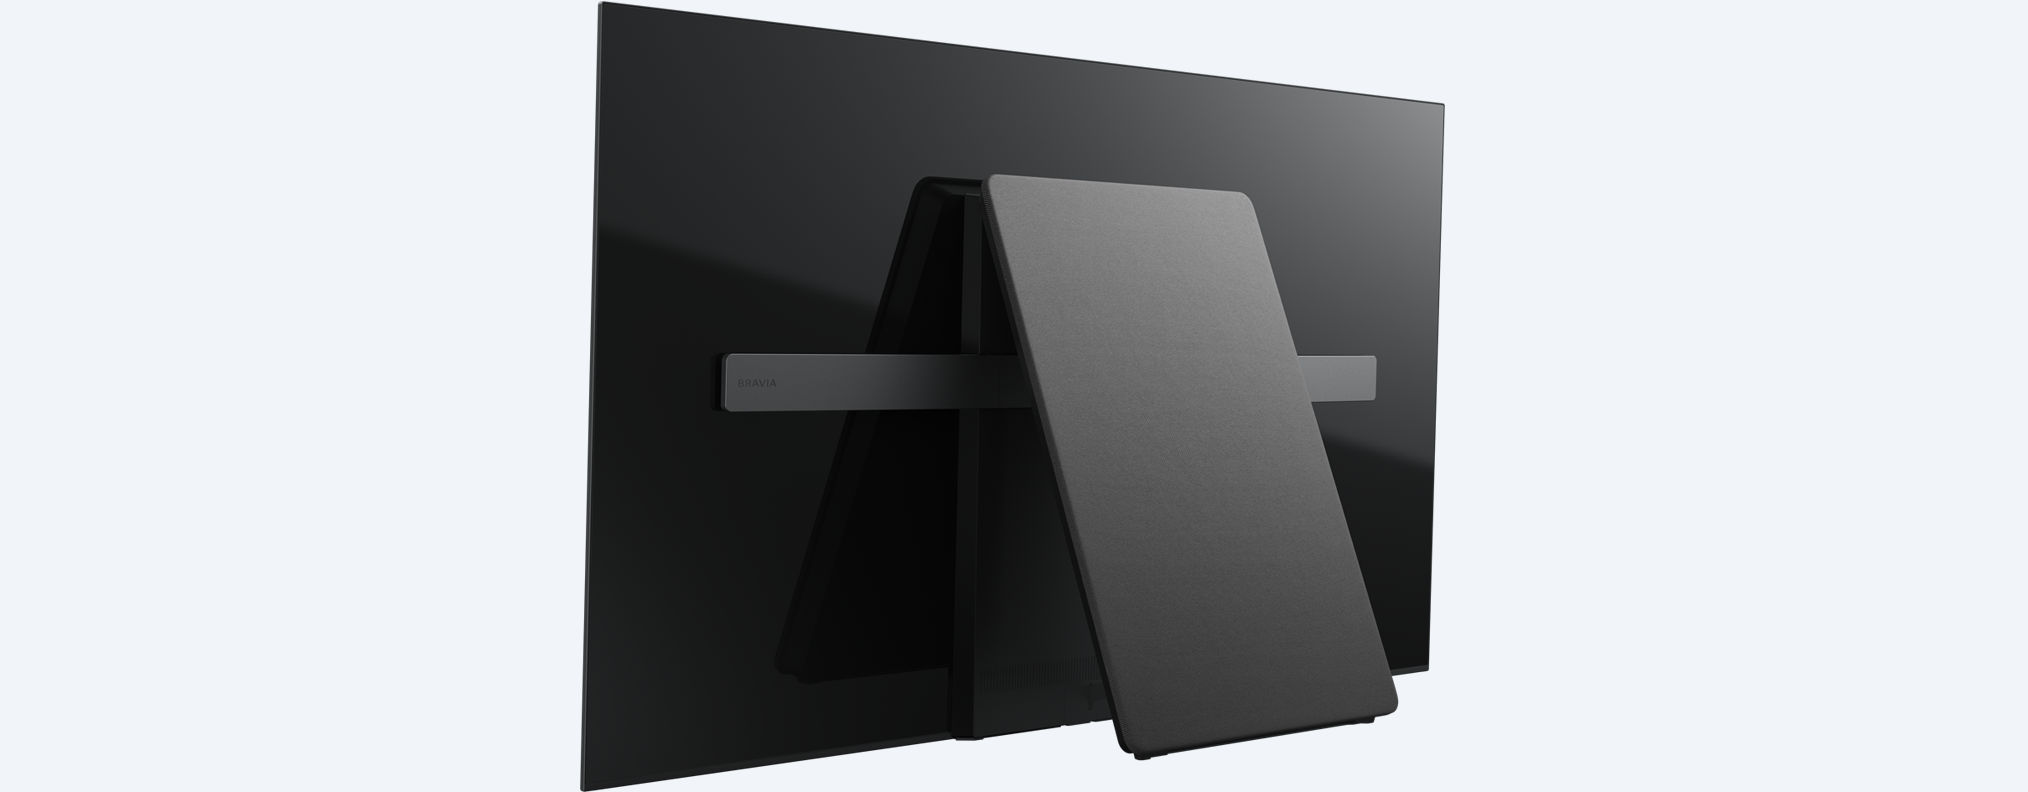 the 2017 sony bravia a1 series oled 4k hdr tv is the world s first without speakers. Black Bedroom Furniture Sets. Home Design Ideas